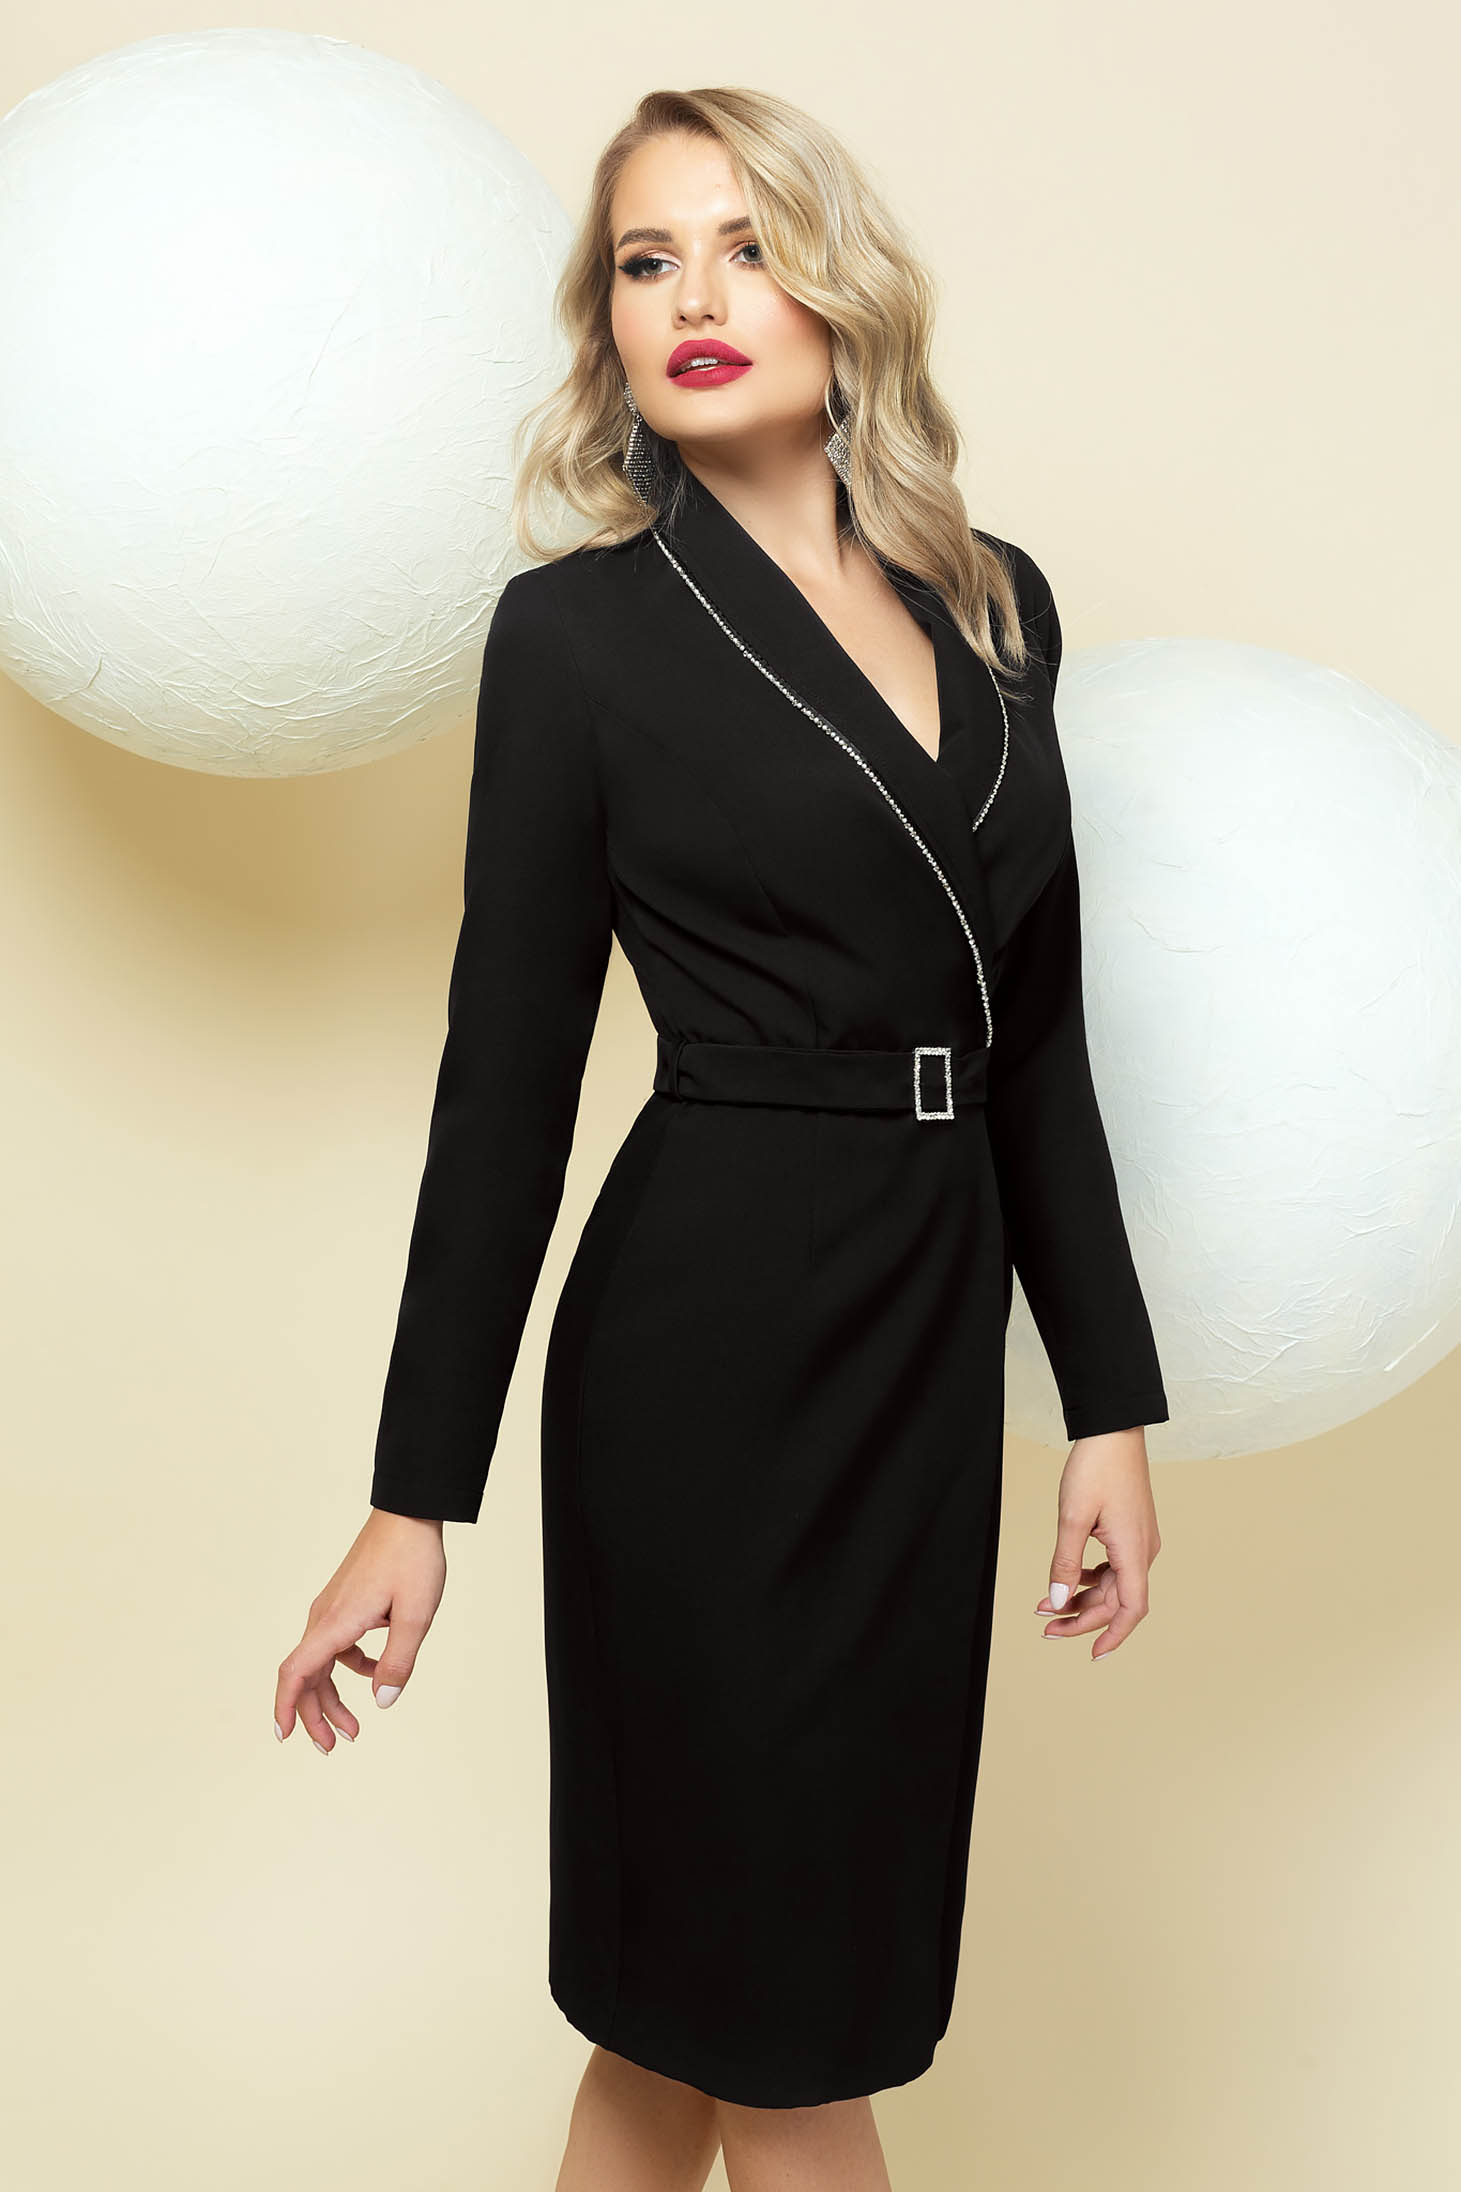 Midi dress occasional black blazer type wrap over front with crystal embellished details accessorized with belt